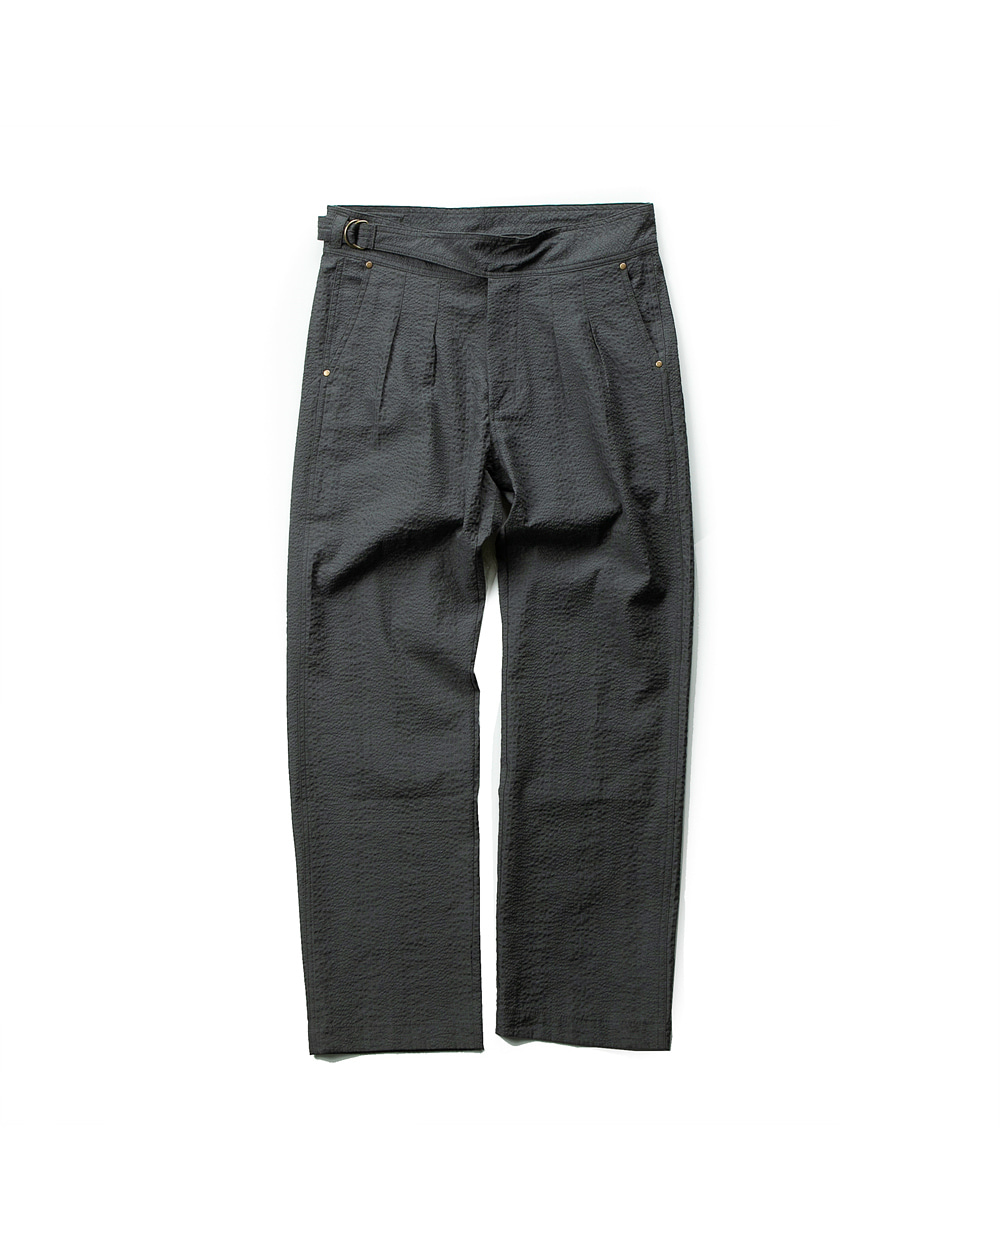 SEERSUCKER GURKHA PANTS GRAY